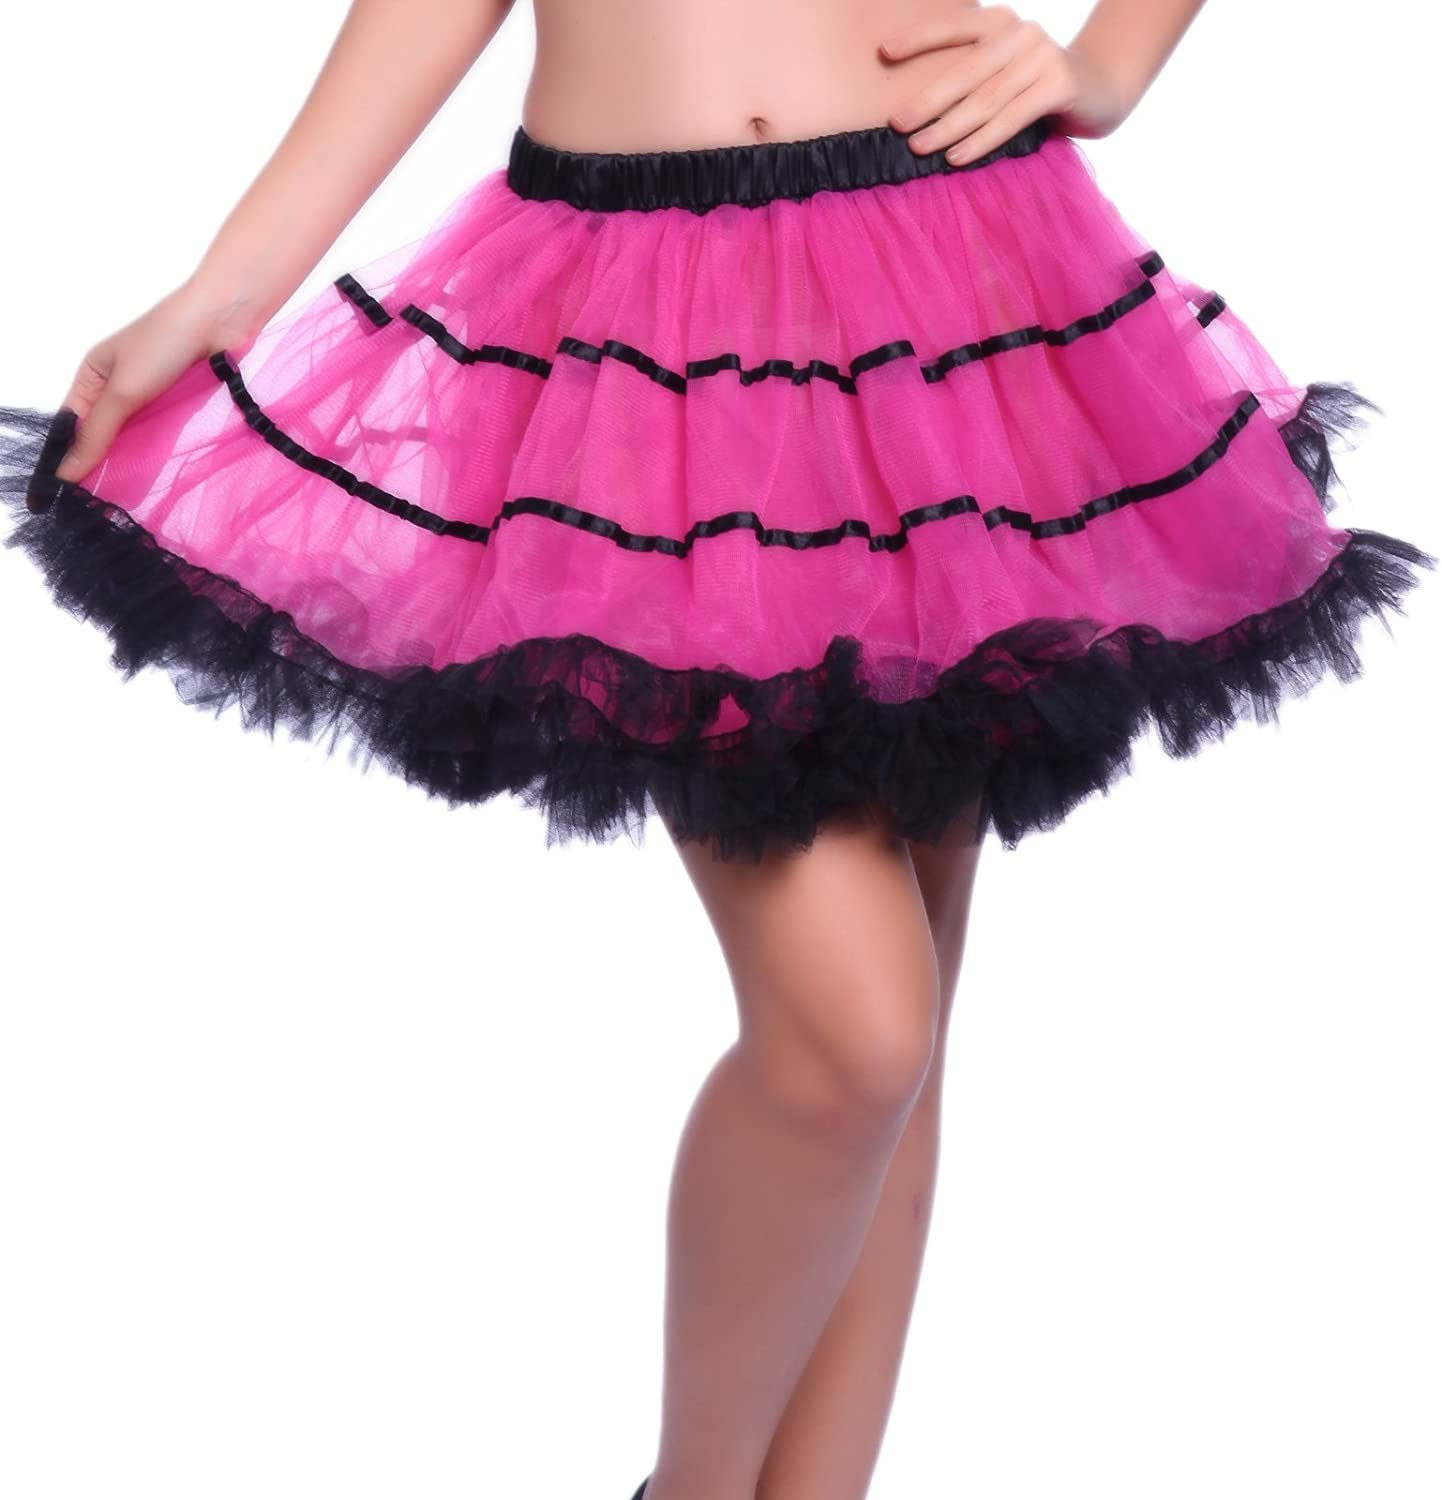 1980s Vintage Retro Swing Ruffled Rave Striped excellence RAR Tulle Gifts Layered